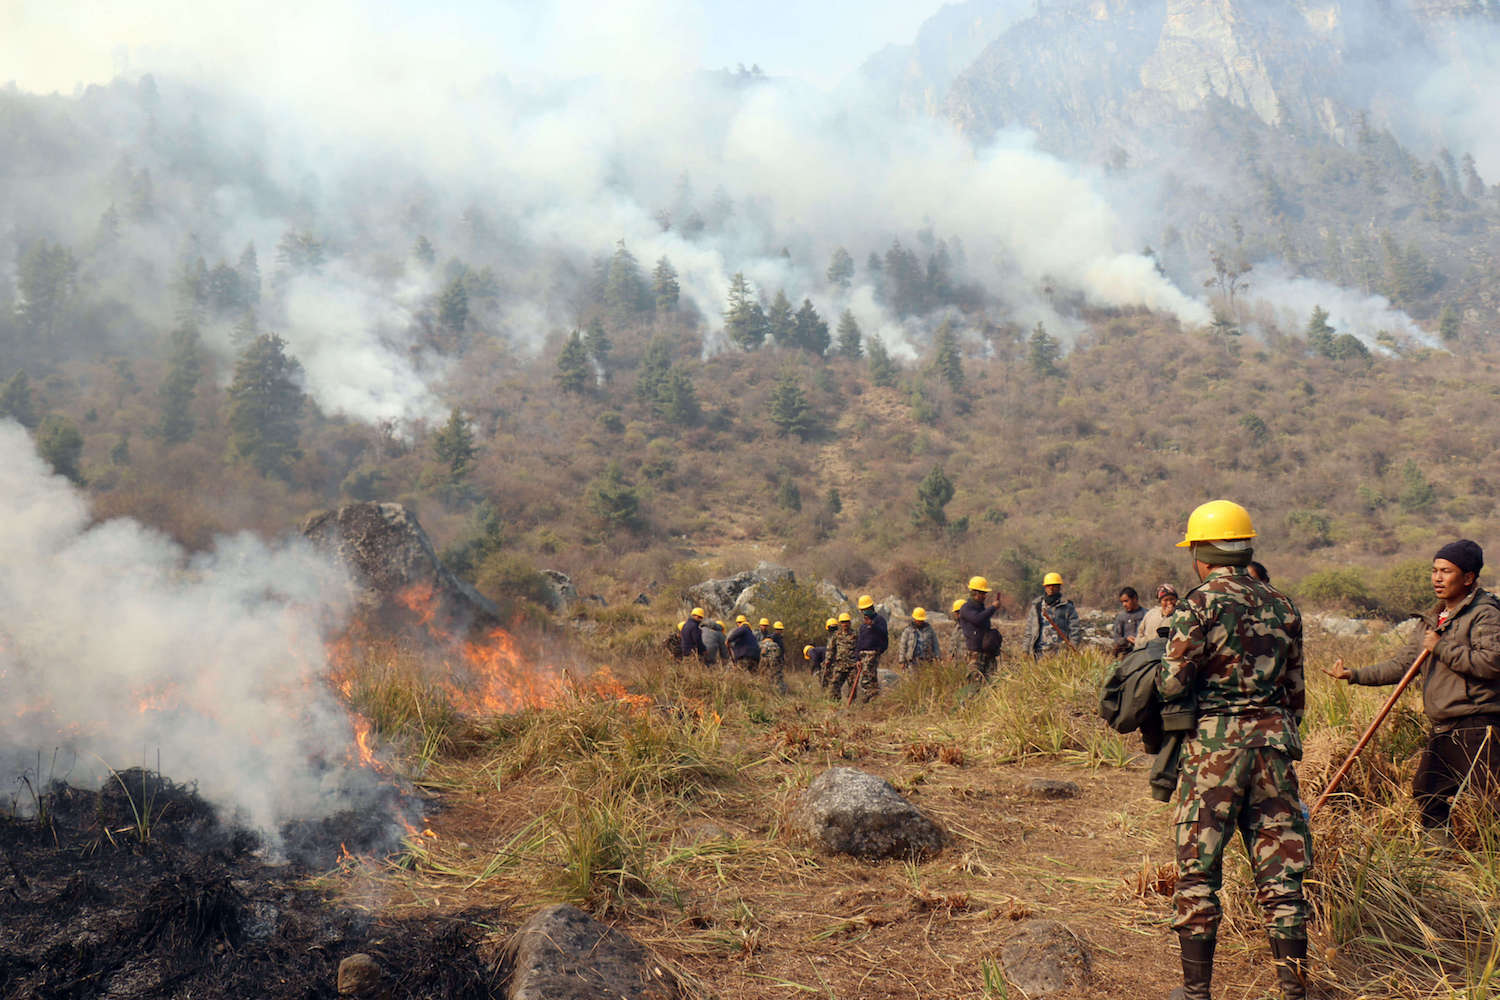 District administration staff and local volunteers try to control the forest fire that has been raging since 23 November in Manang.